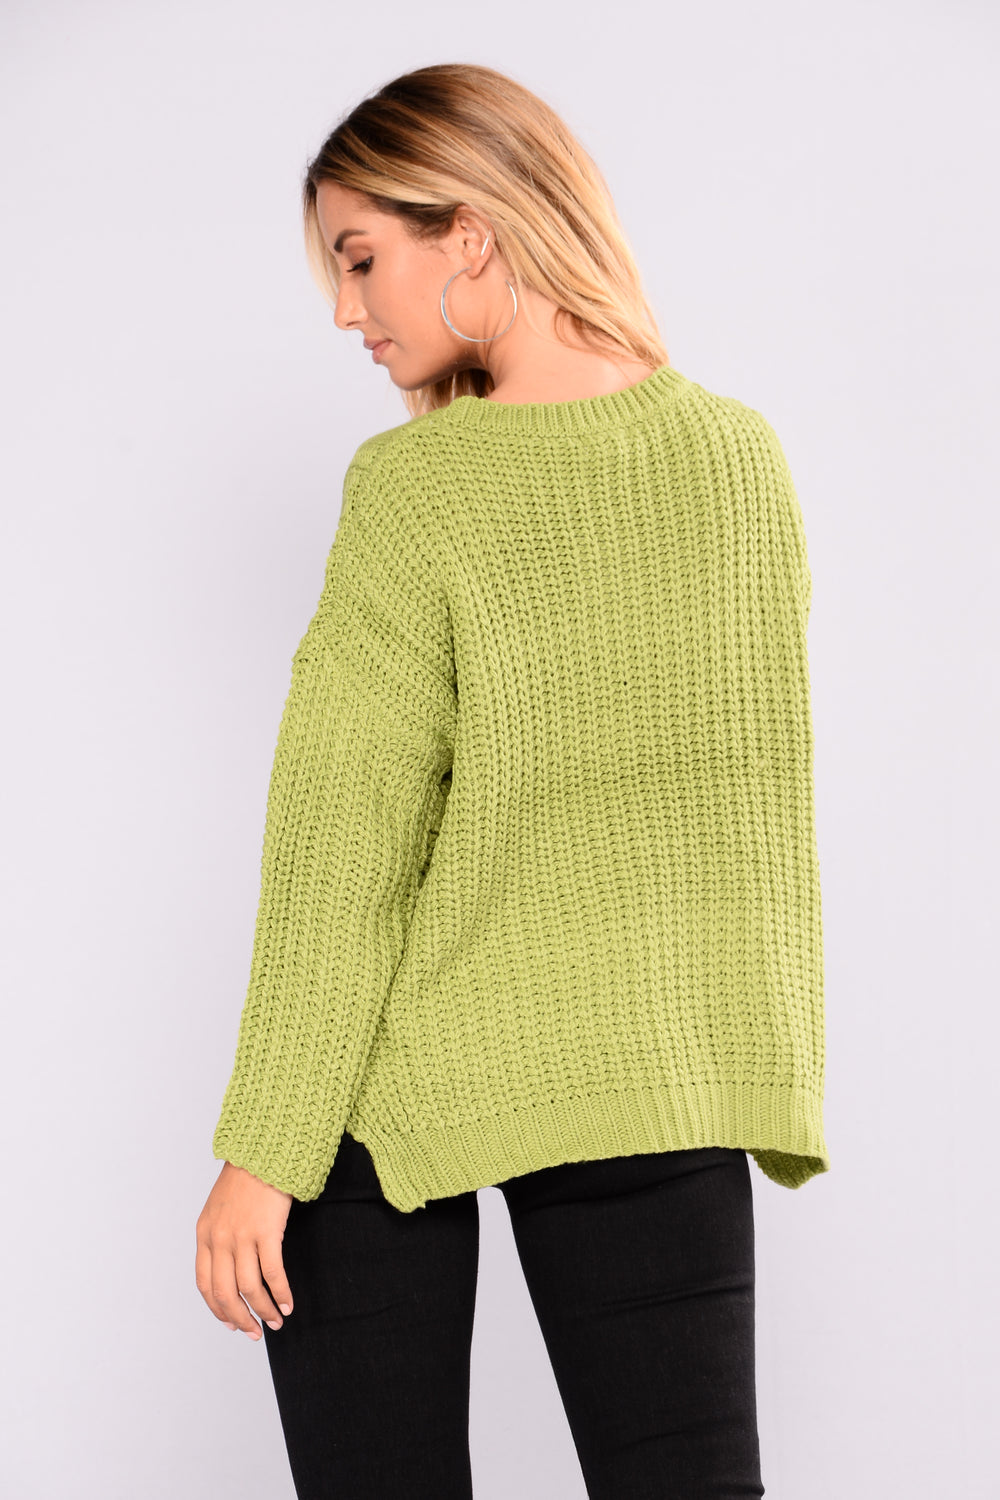 Her First Show Sweater - Apple Green